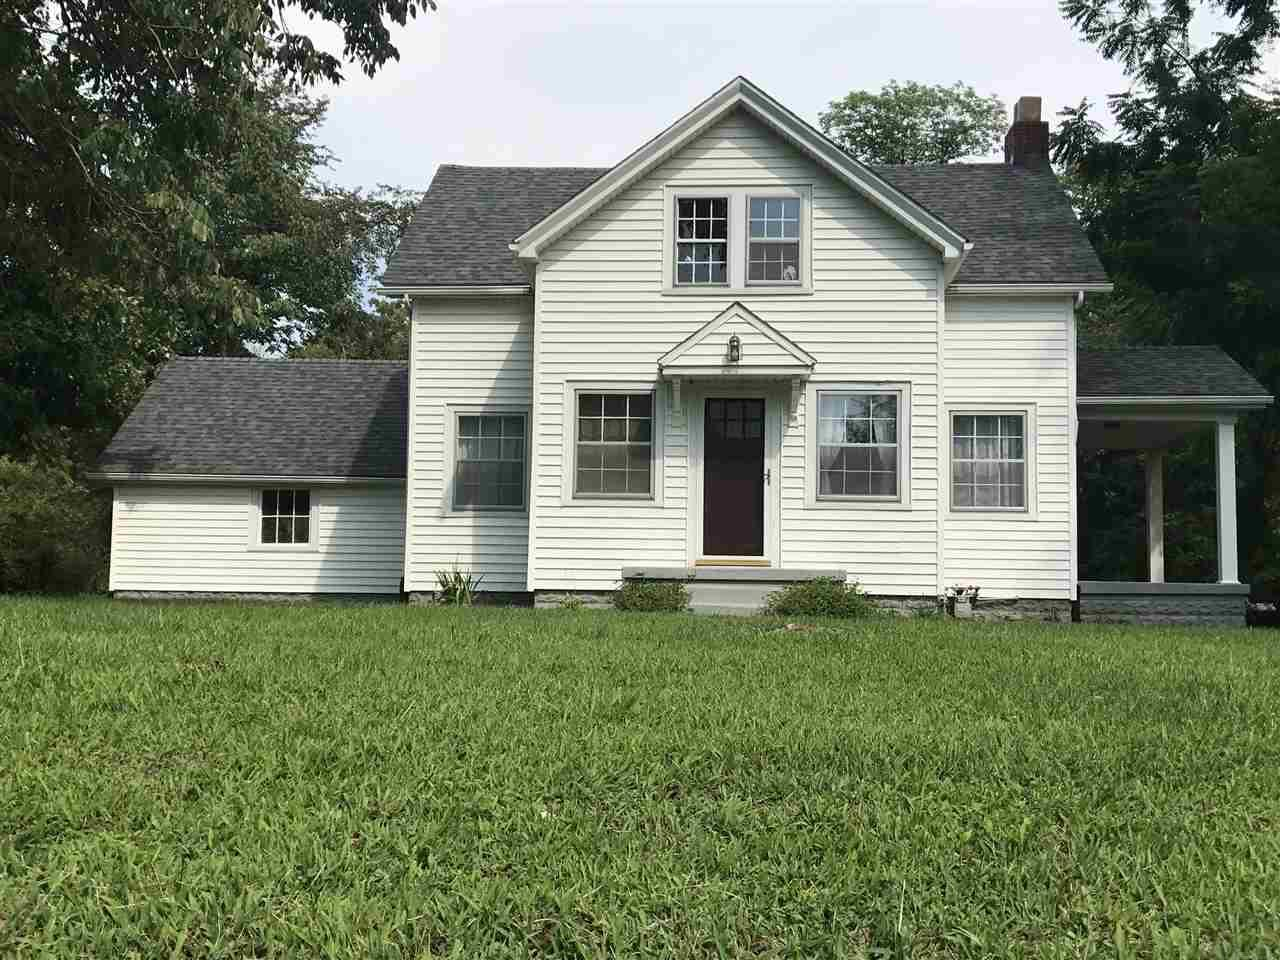 13521 Old State, Evansville, IN 47725